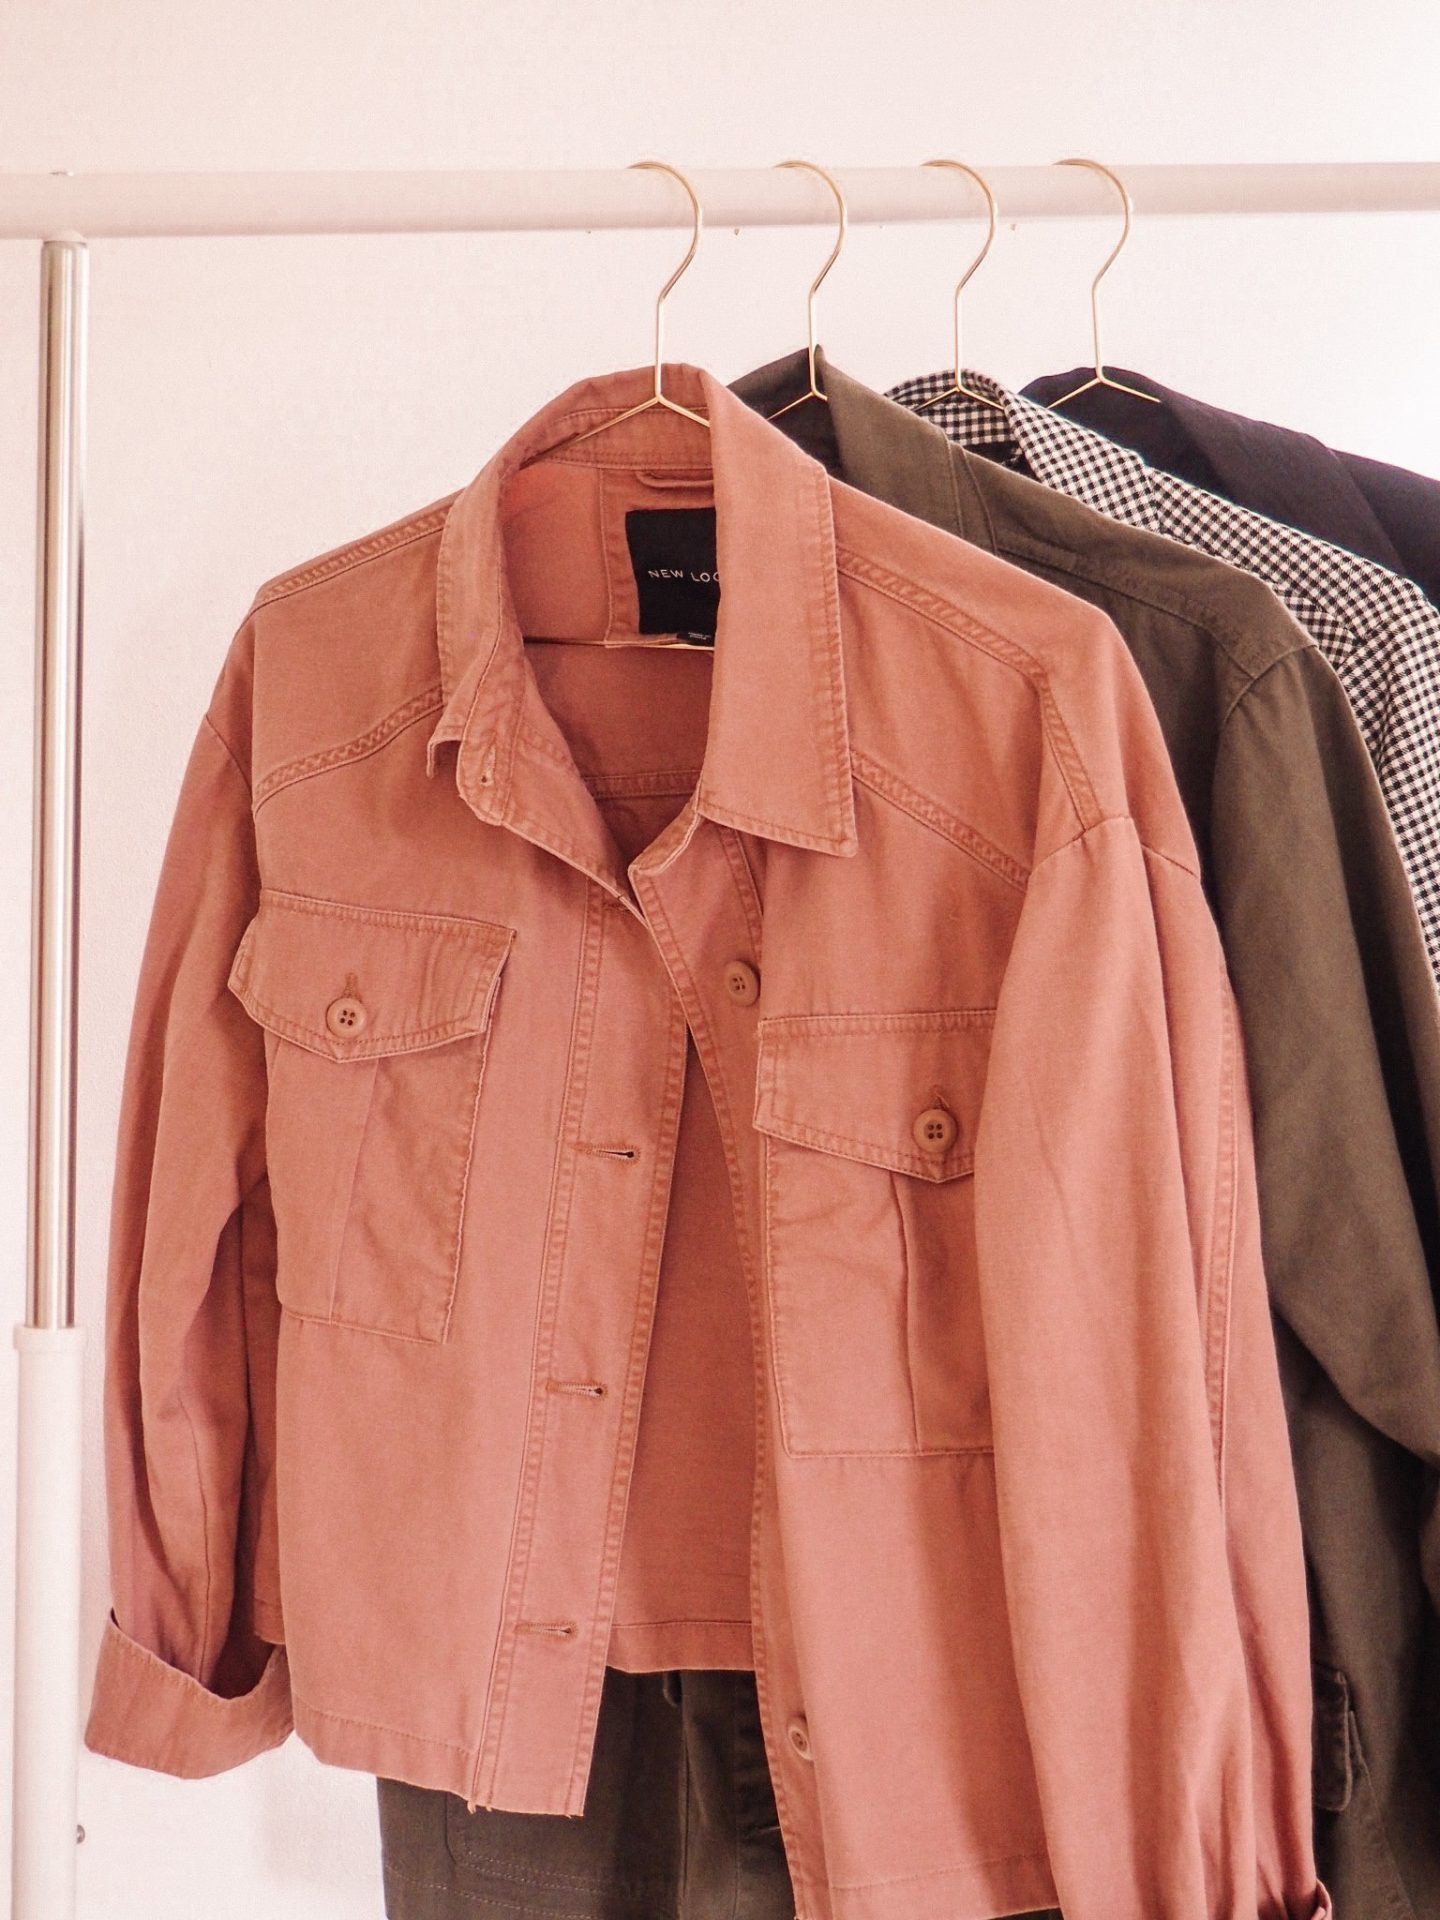 New Look cropped pink jacket